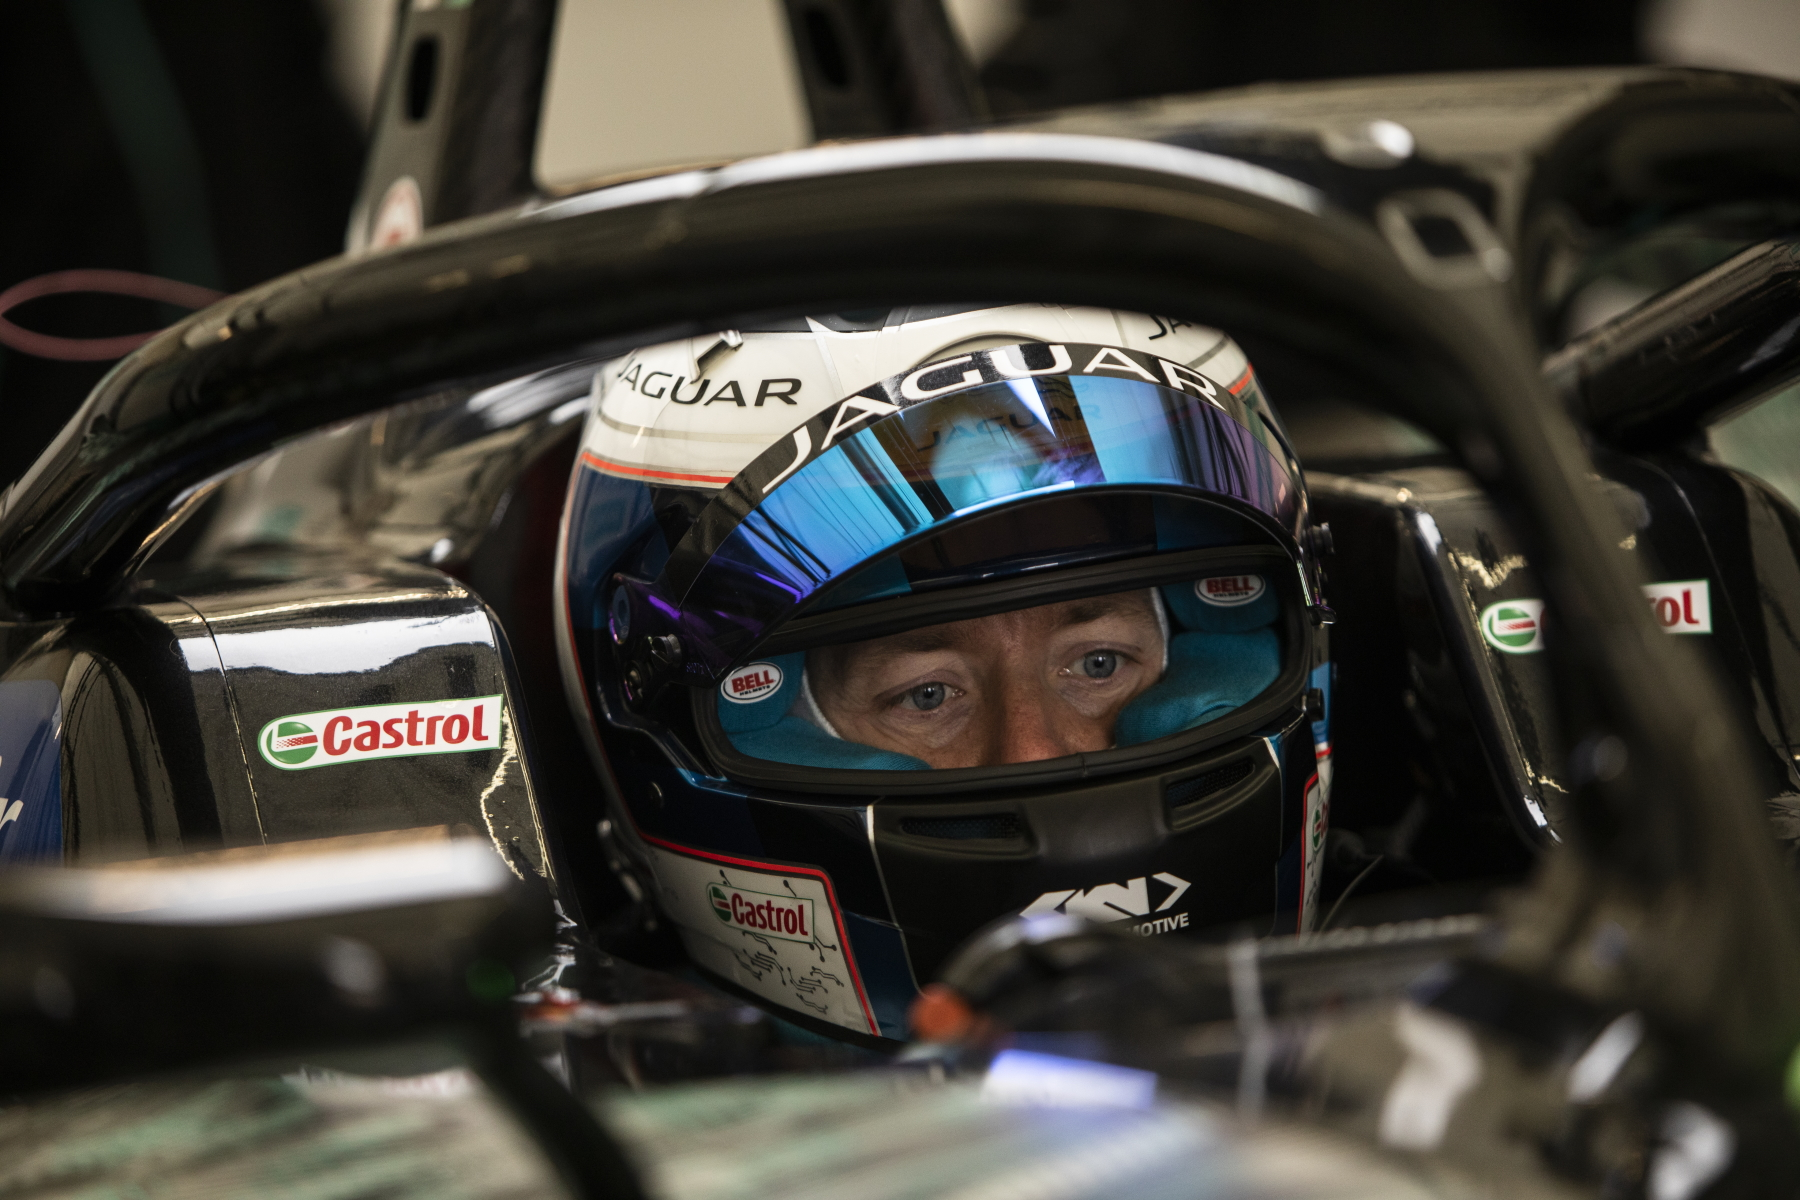 Sam-Bird-Jaguar-Racing-im-Cockpit-Visir-oben.jpg